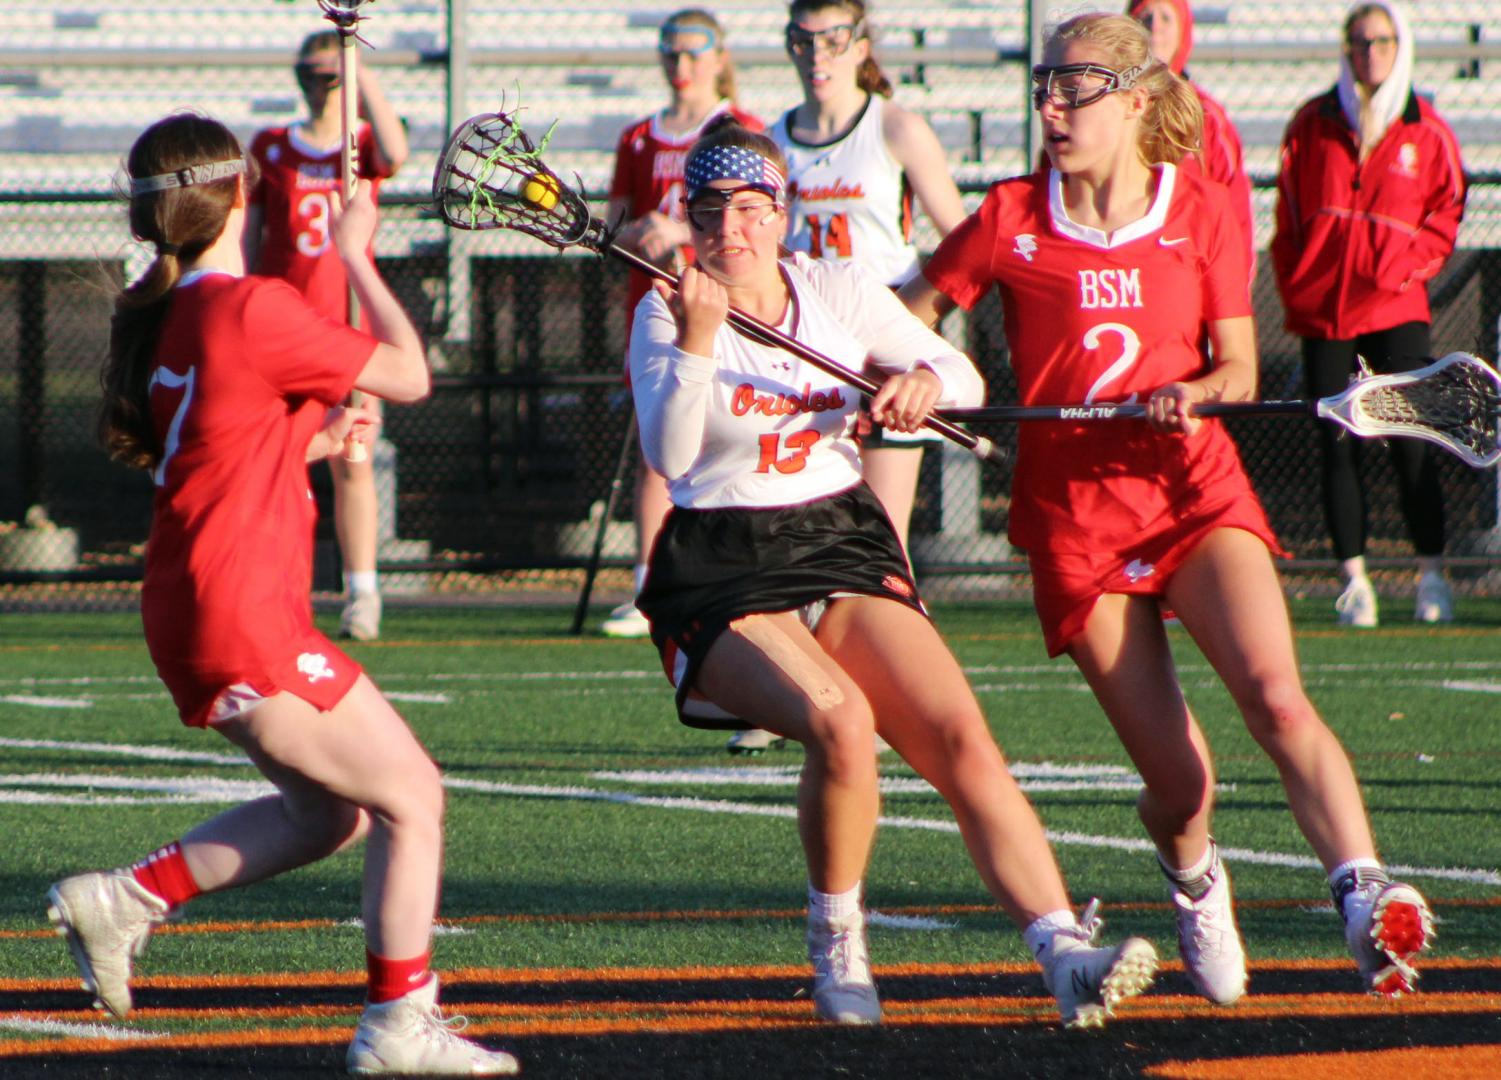 Junior Anna Nicholls cradles the ball to move between two Benilde-St. Margaret players April 18. Park's next game is against Hopkins 6 p.m. April 23 at the stadium.